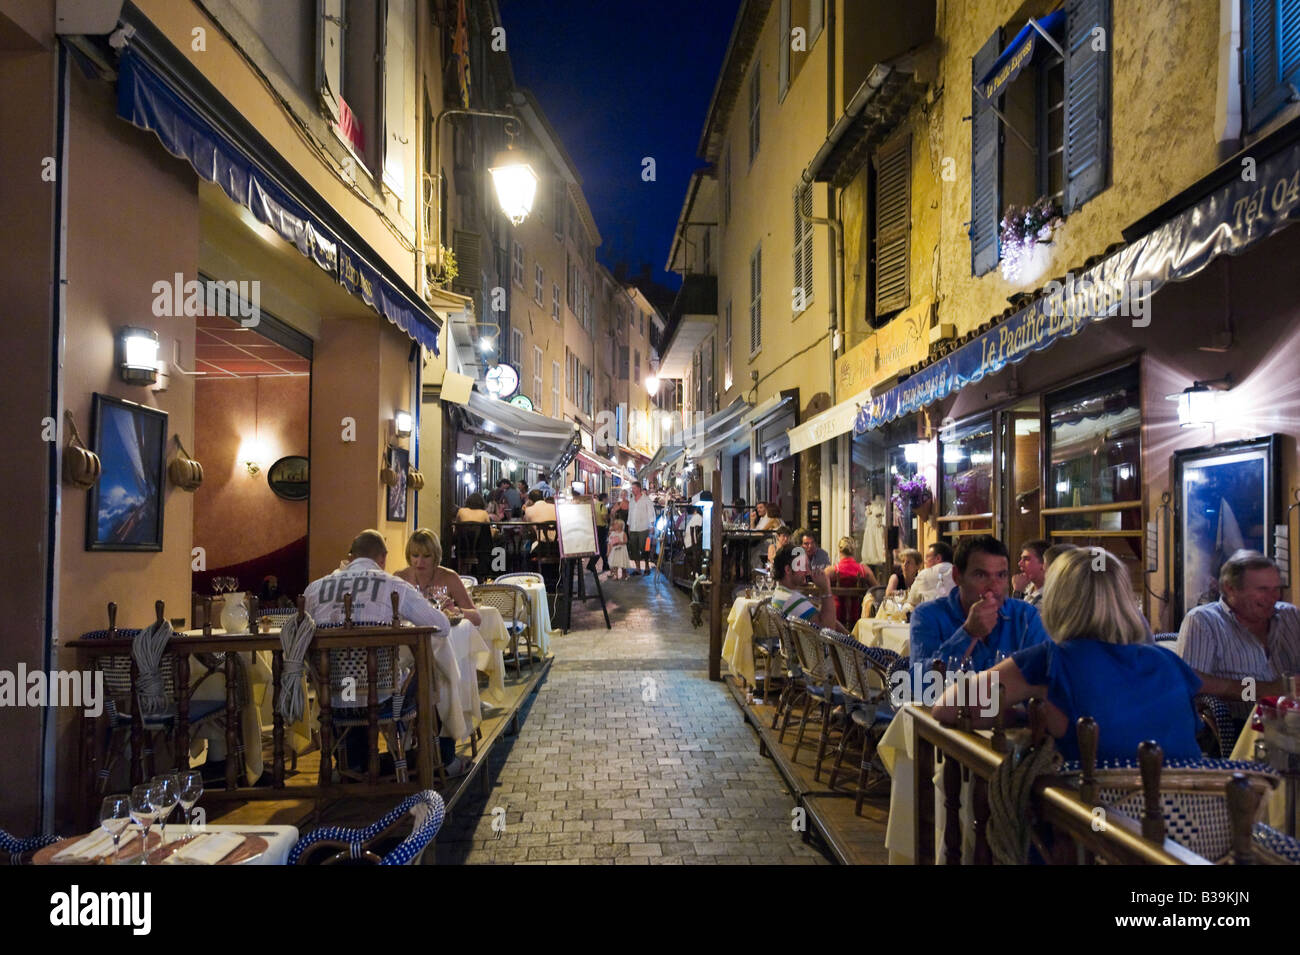 resaurant on the rue du suquet in the old town le suquet at night stock photo royalty free. Black Bedroom Furniture Sets. Home Design Ideas